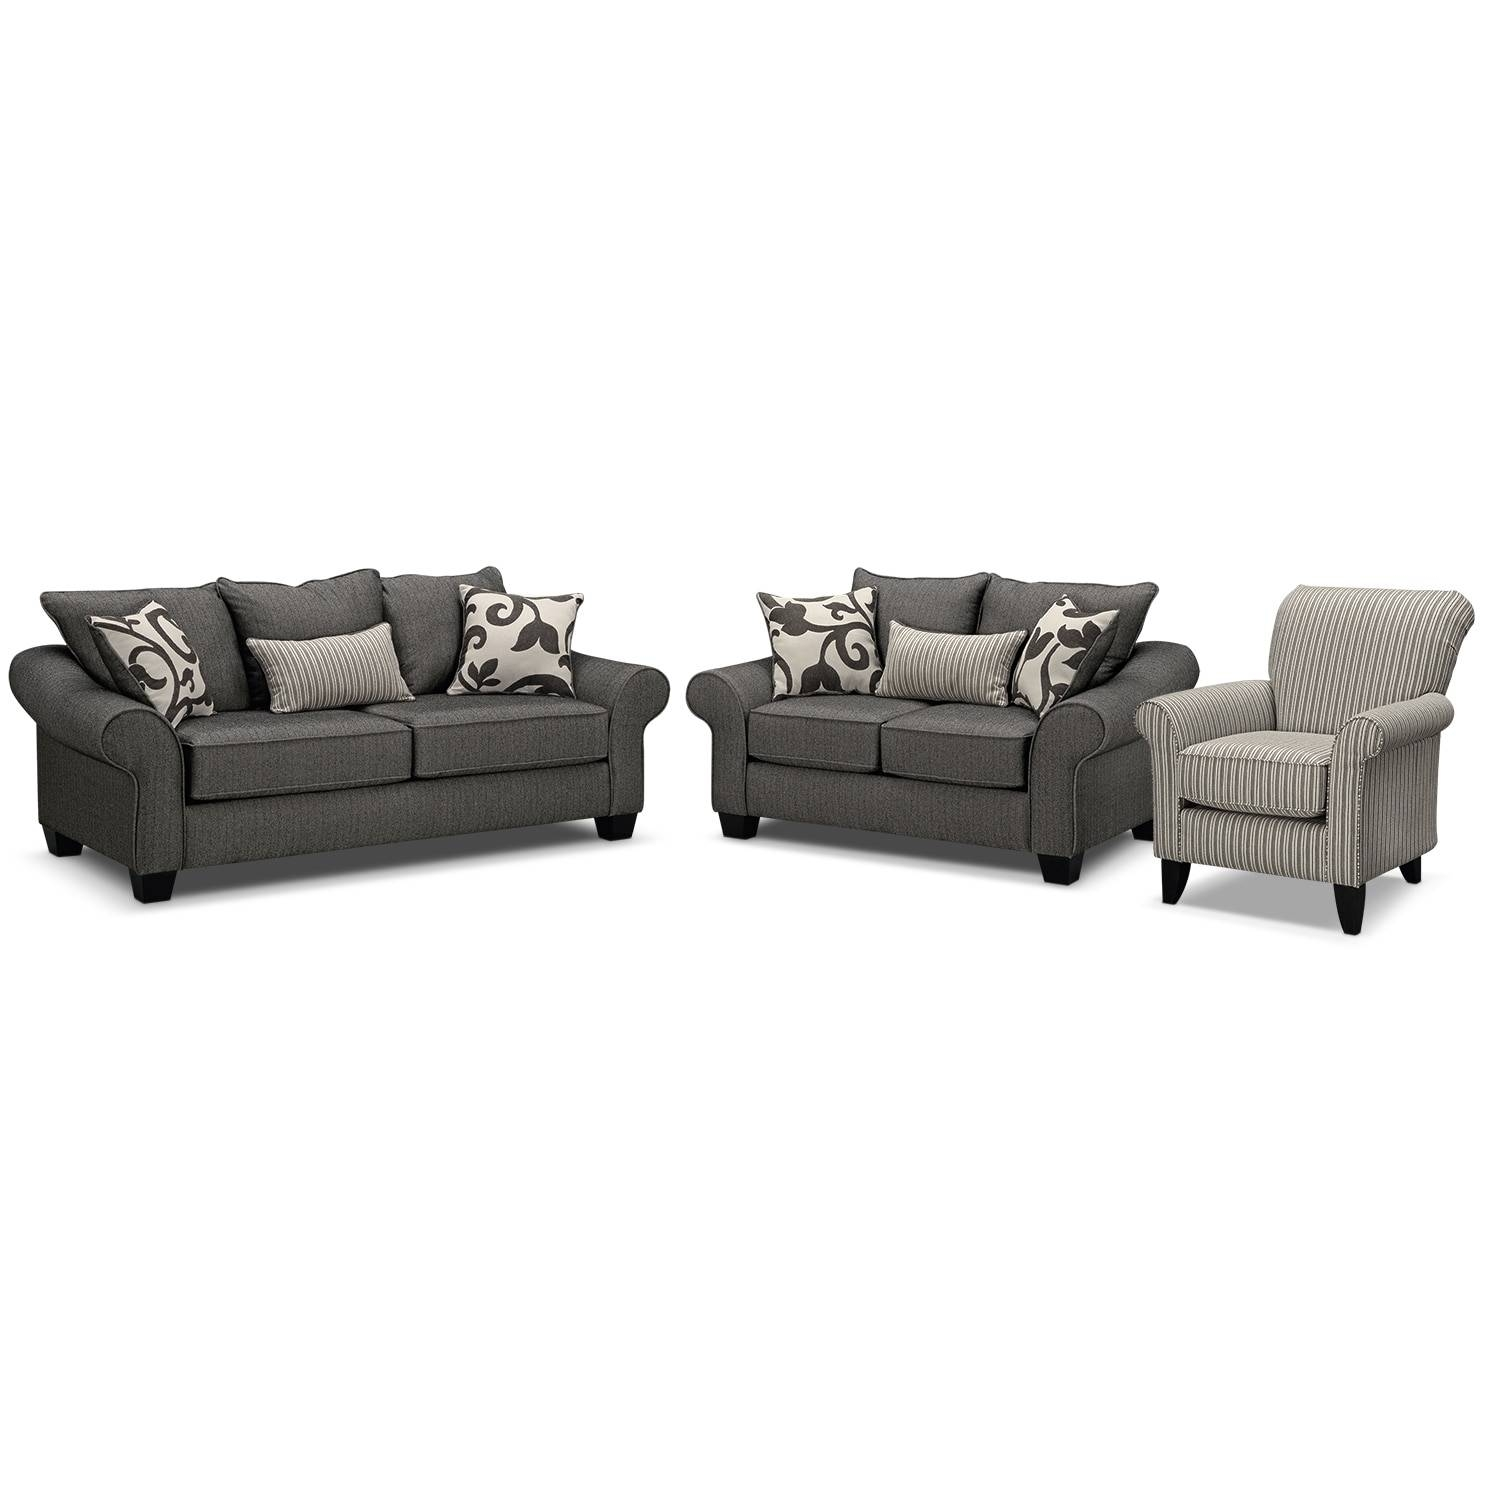 Colette Sofa And Accent Chair Set - Gray | Value City Furniture intended for Sofa and Accent Chair Set (Image 12 of 30)